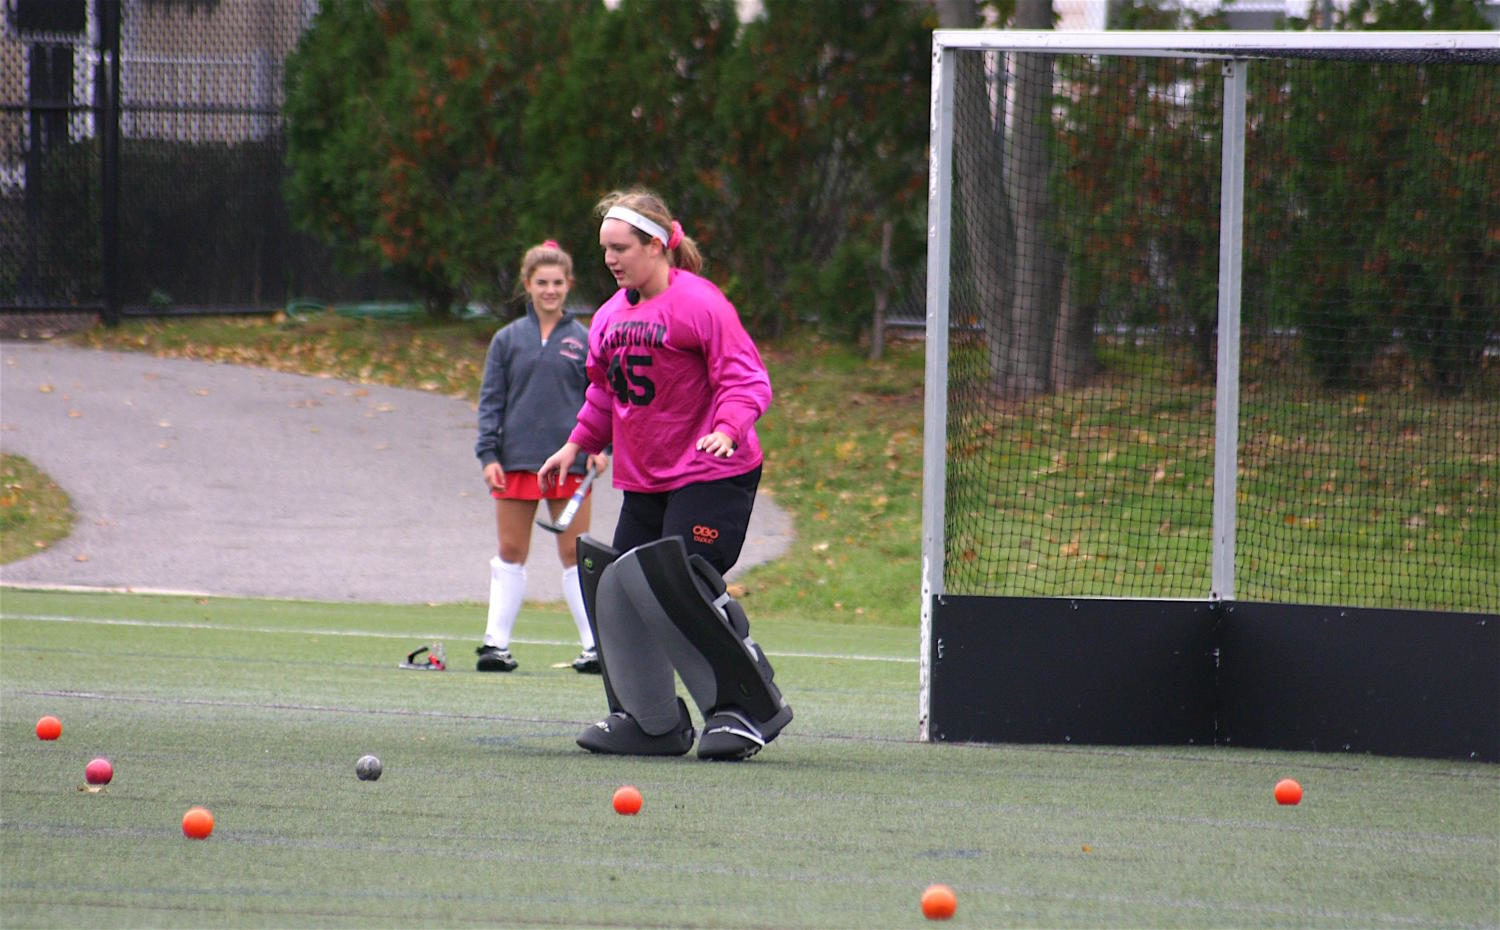 In+October+2016%2C+Jonna+Kennedy+was+in+goal+for+the+Watertown+High+field+hockey+team+at+Victory+Field.+By+April+2017%2C+she+was+playing+for+the+US+Under-17+national+team+in+Ireland.